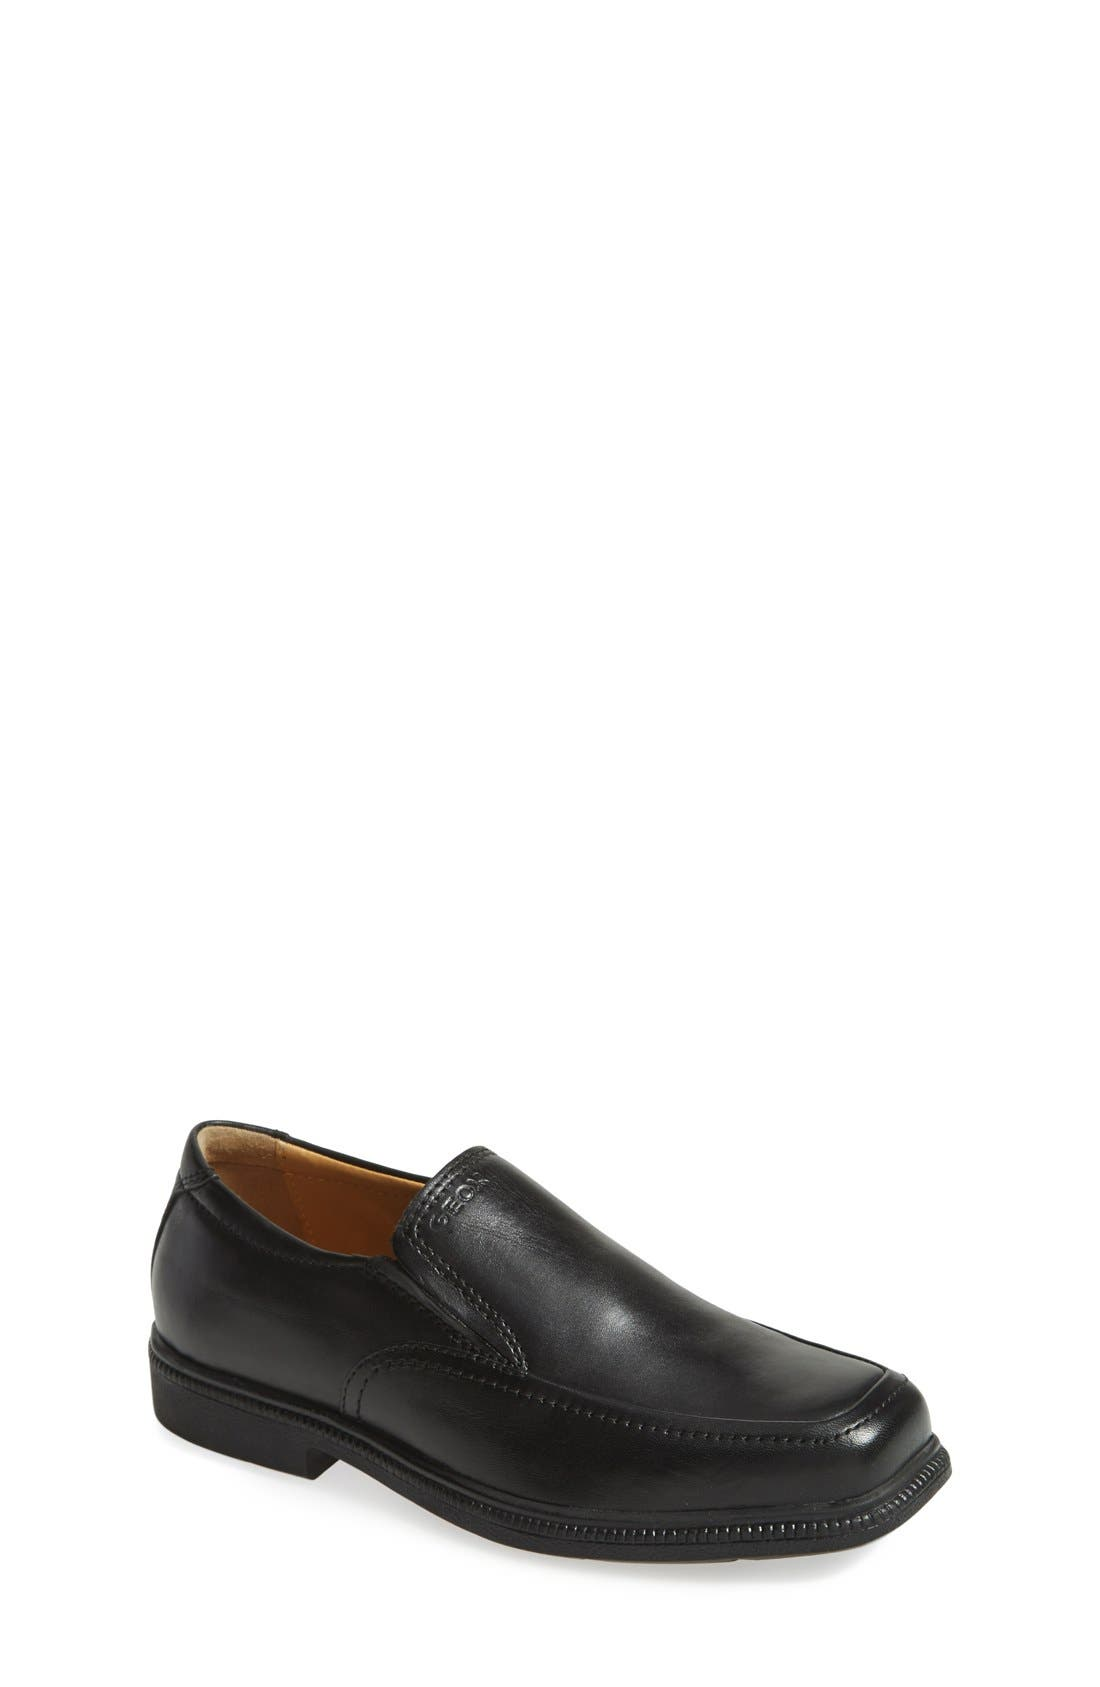 GEOX, 'Federico' Loafer, Main thumbnail 1, color, 001